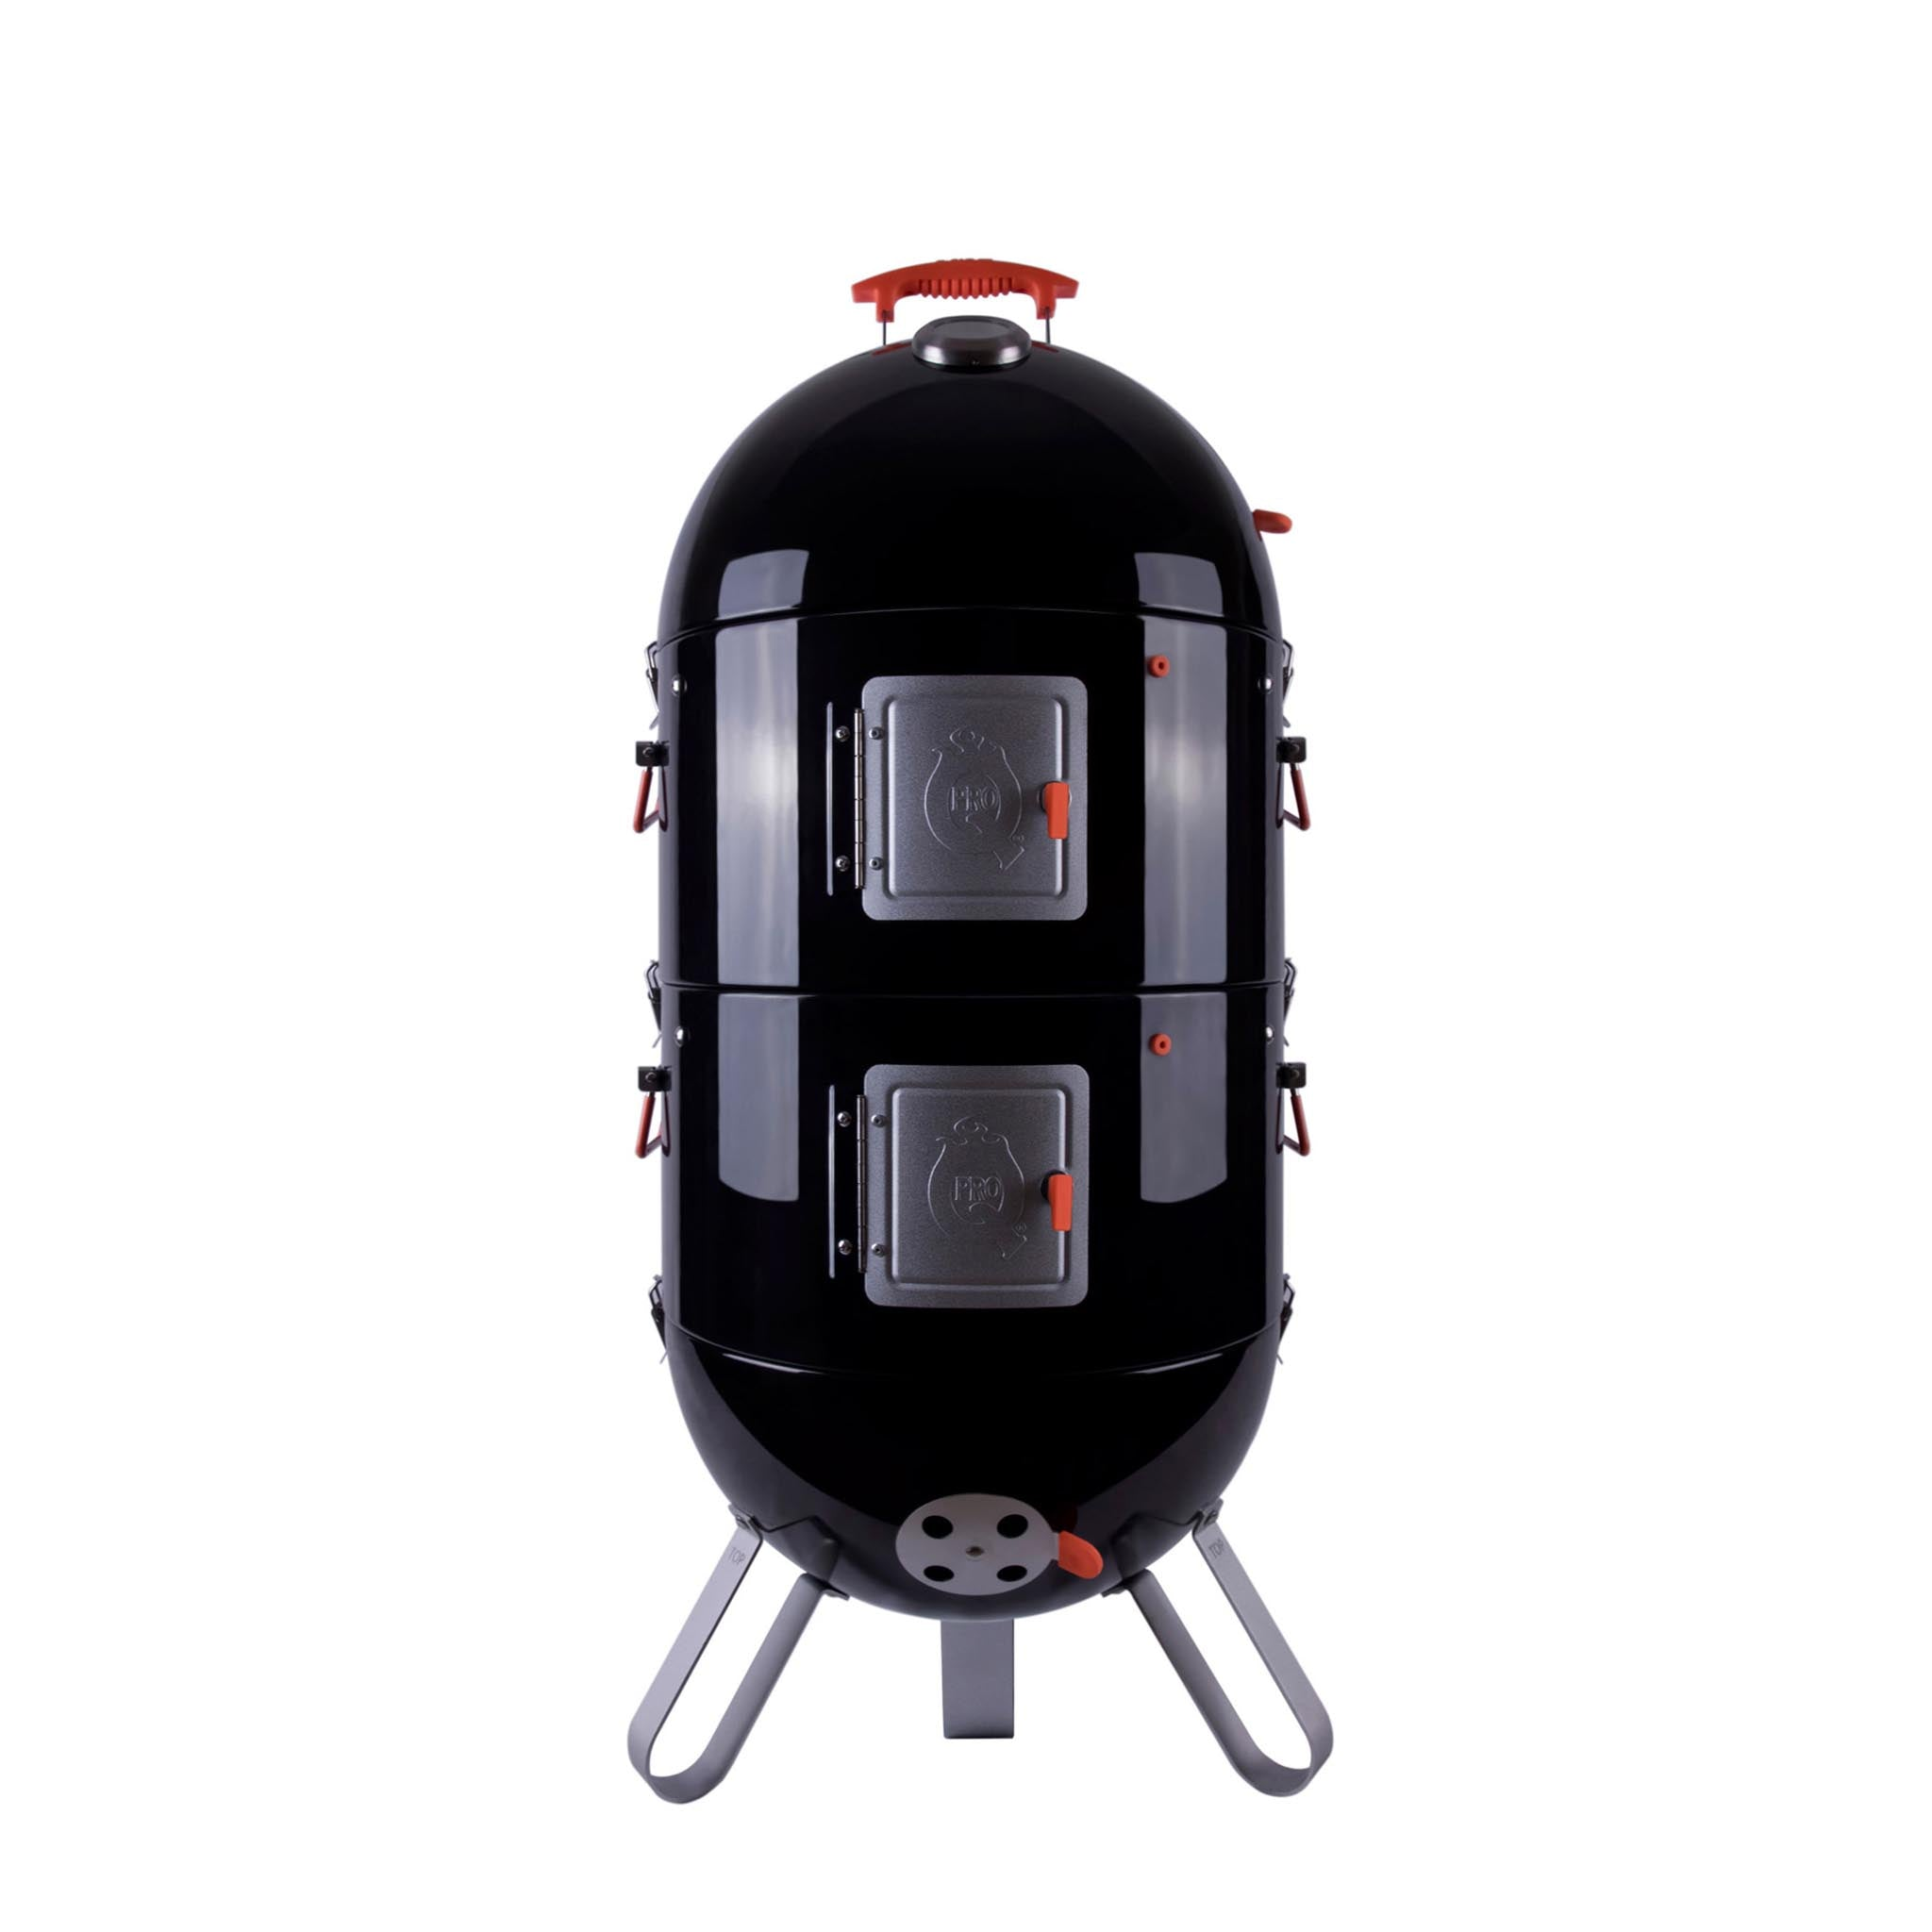 ProQ Frontier Elite 3in1 BBQ Smoker